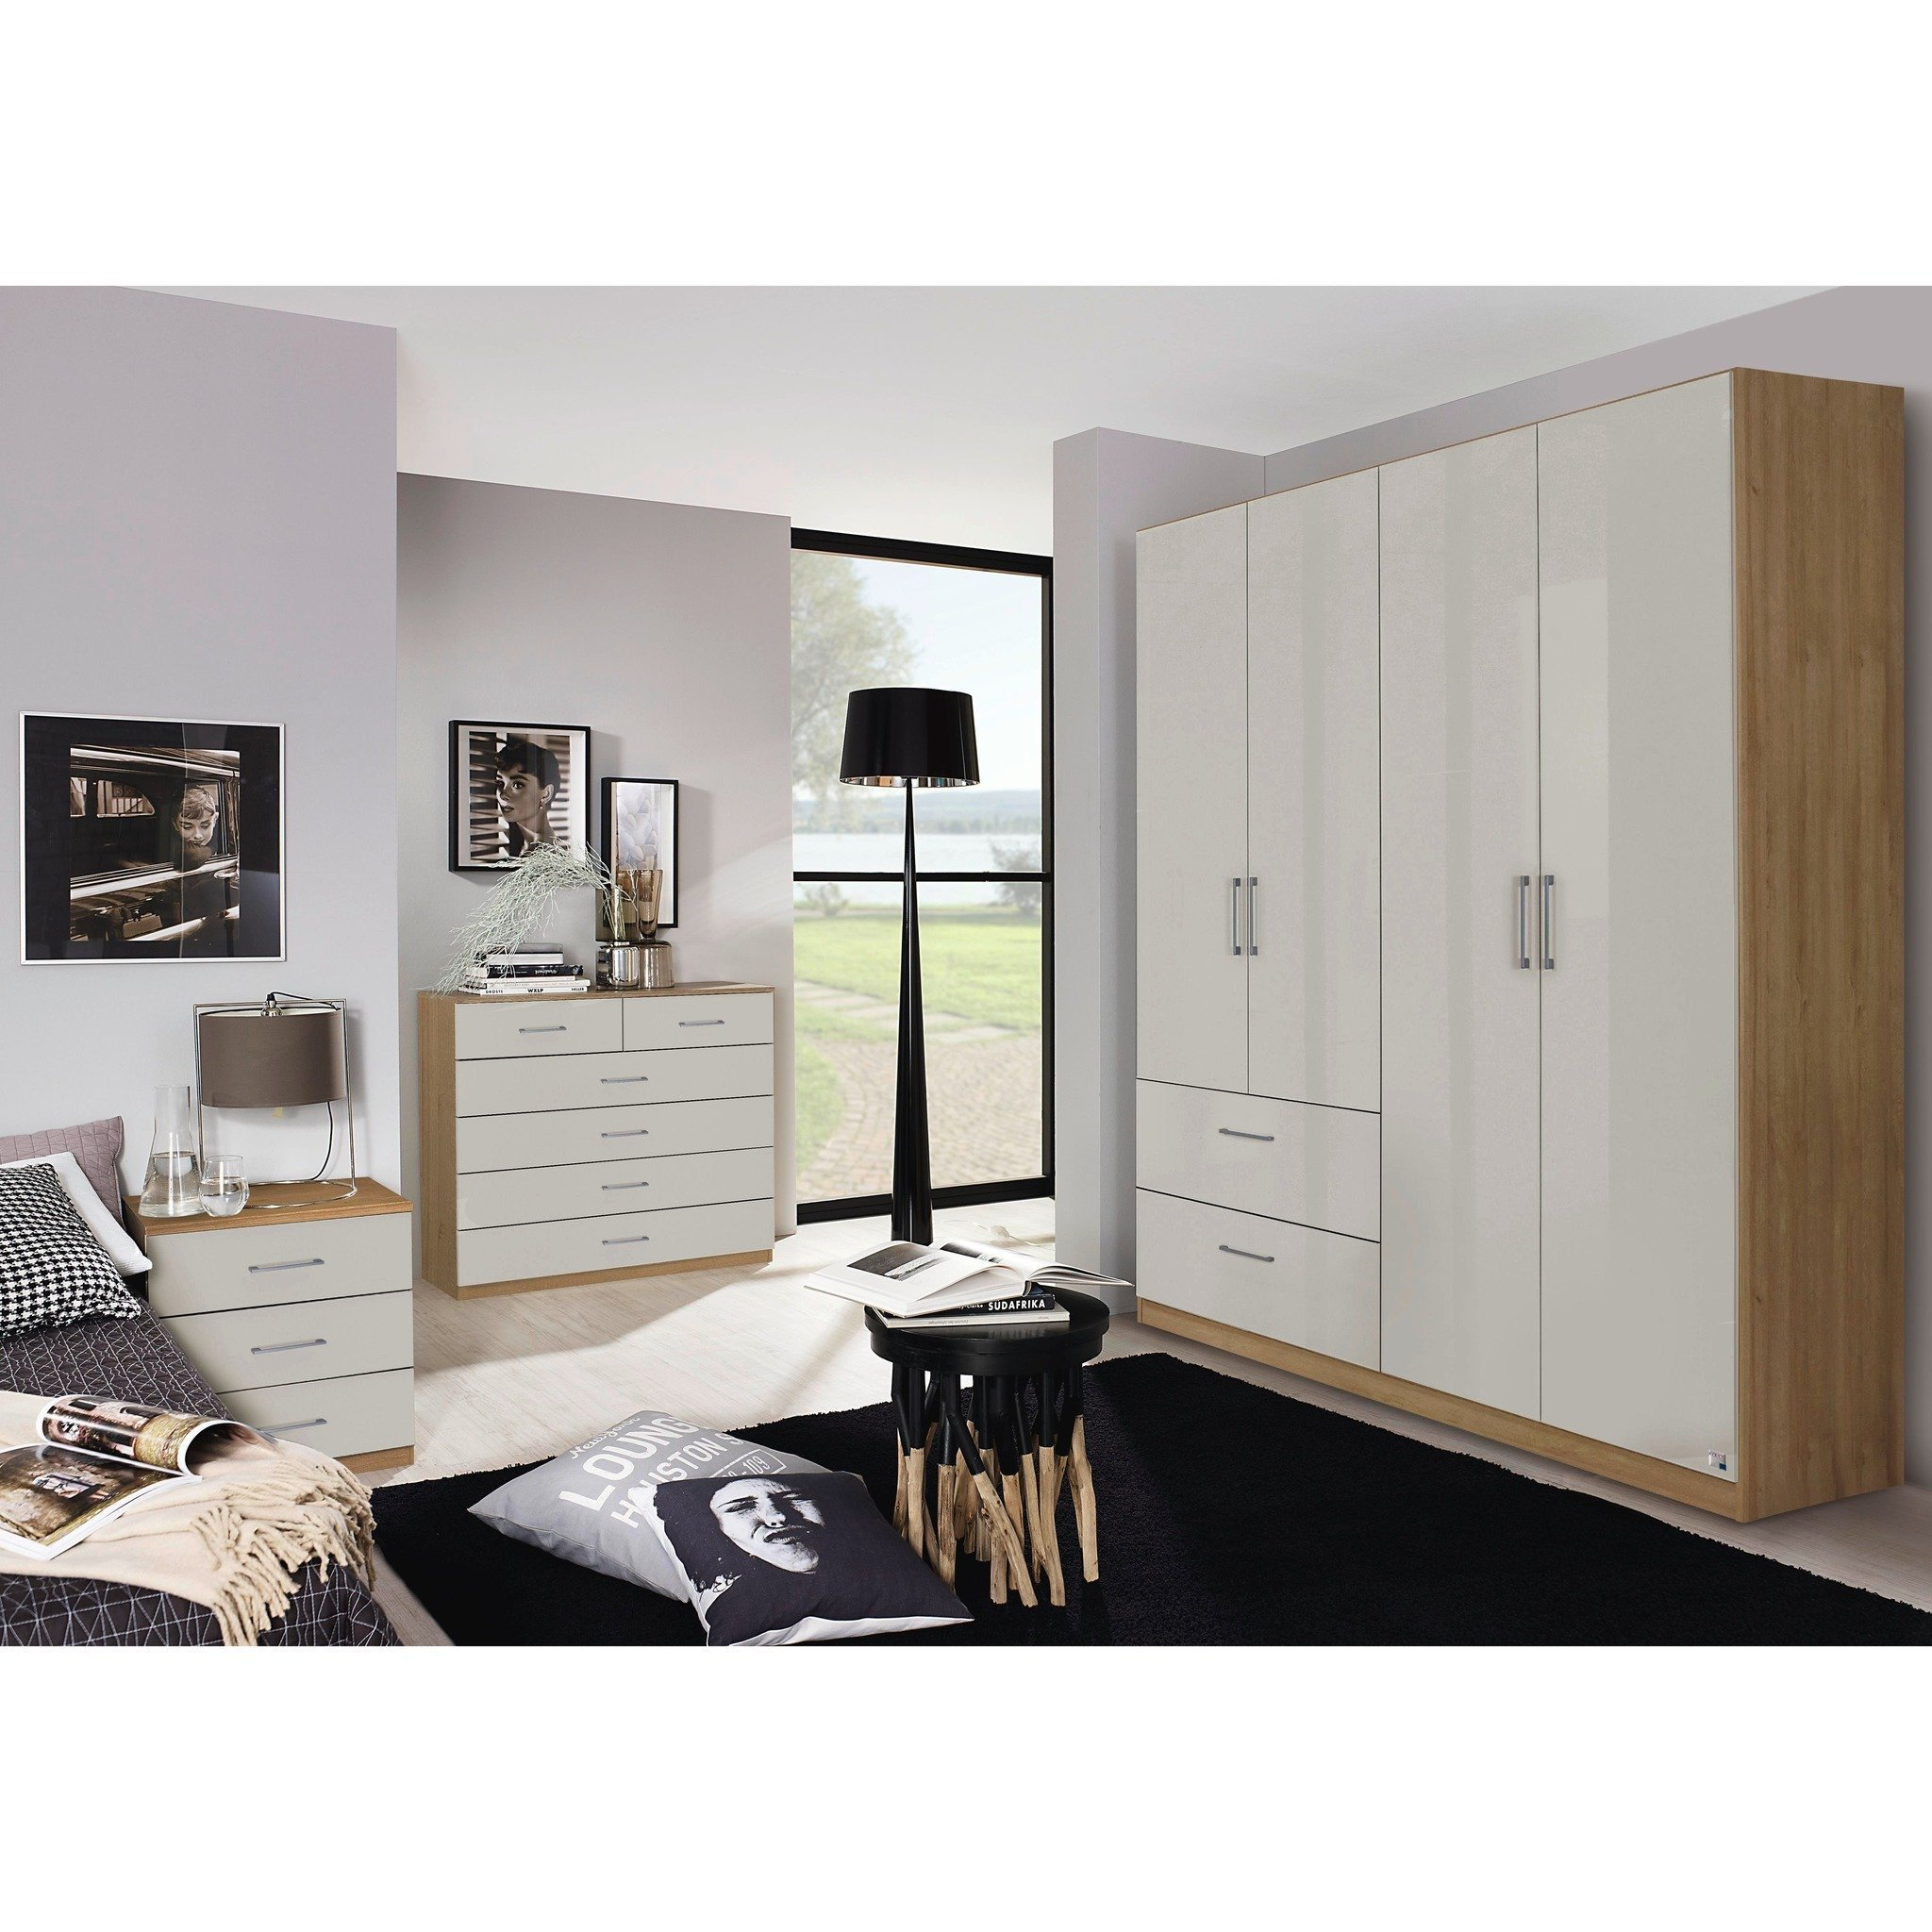 Best Rauch Morella Range German Made Bedroom Furniture With Pictures